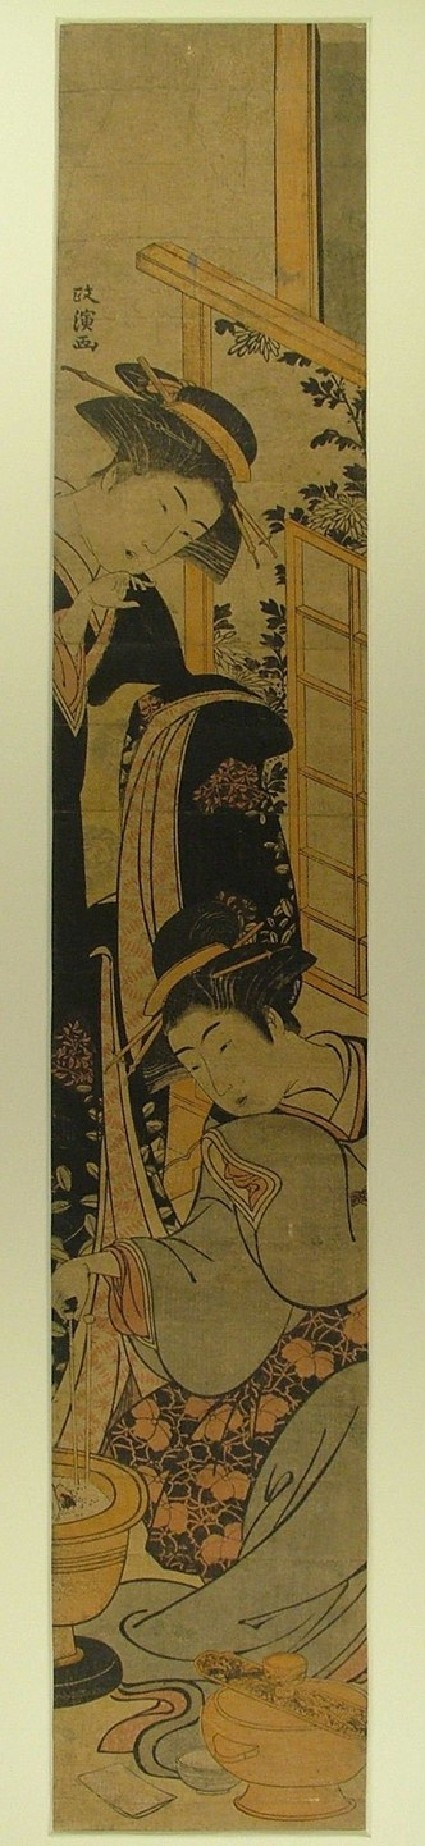 A girl in a figured black kimono speaking to her maid who tends a brazier